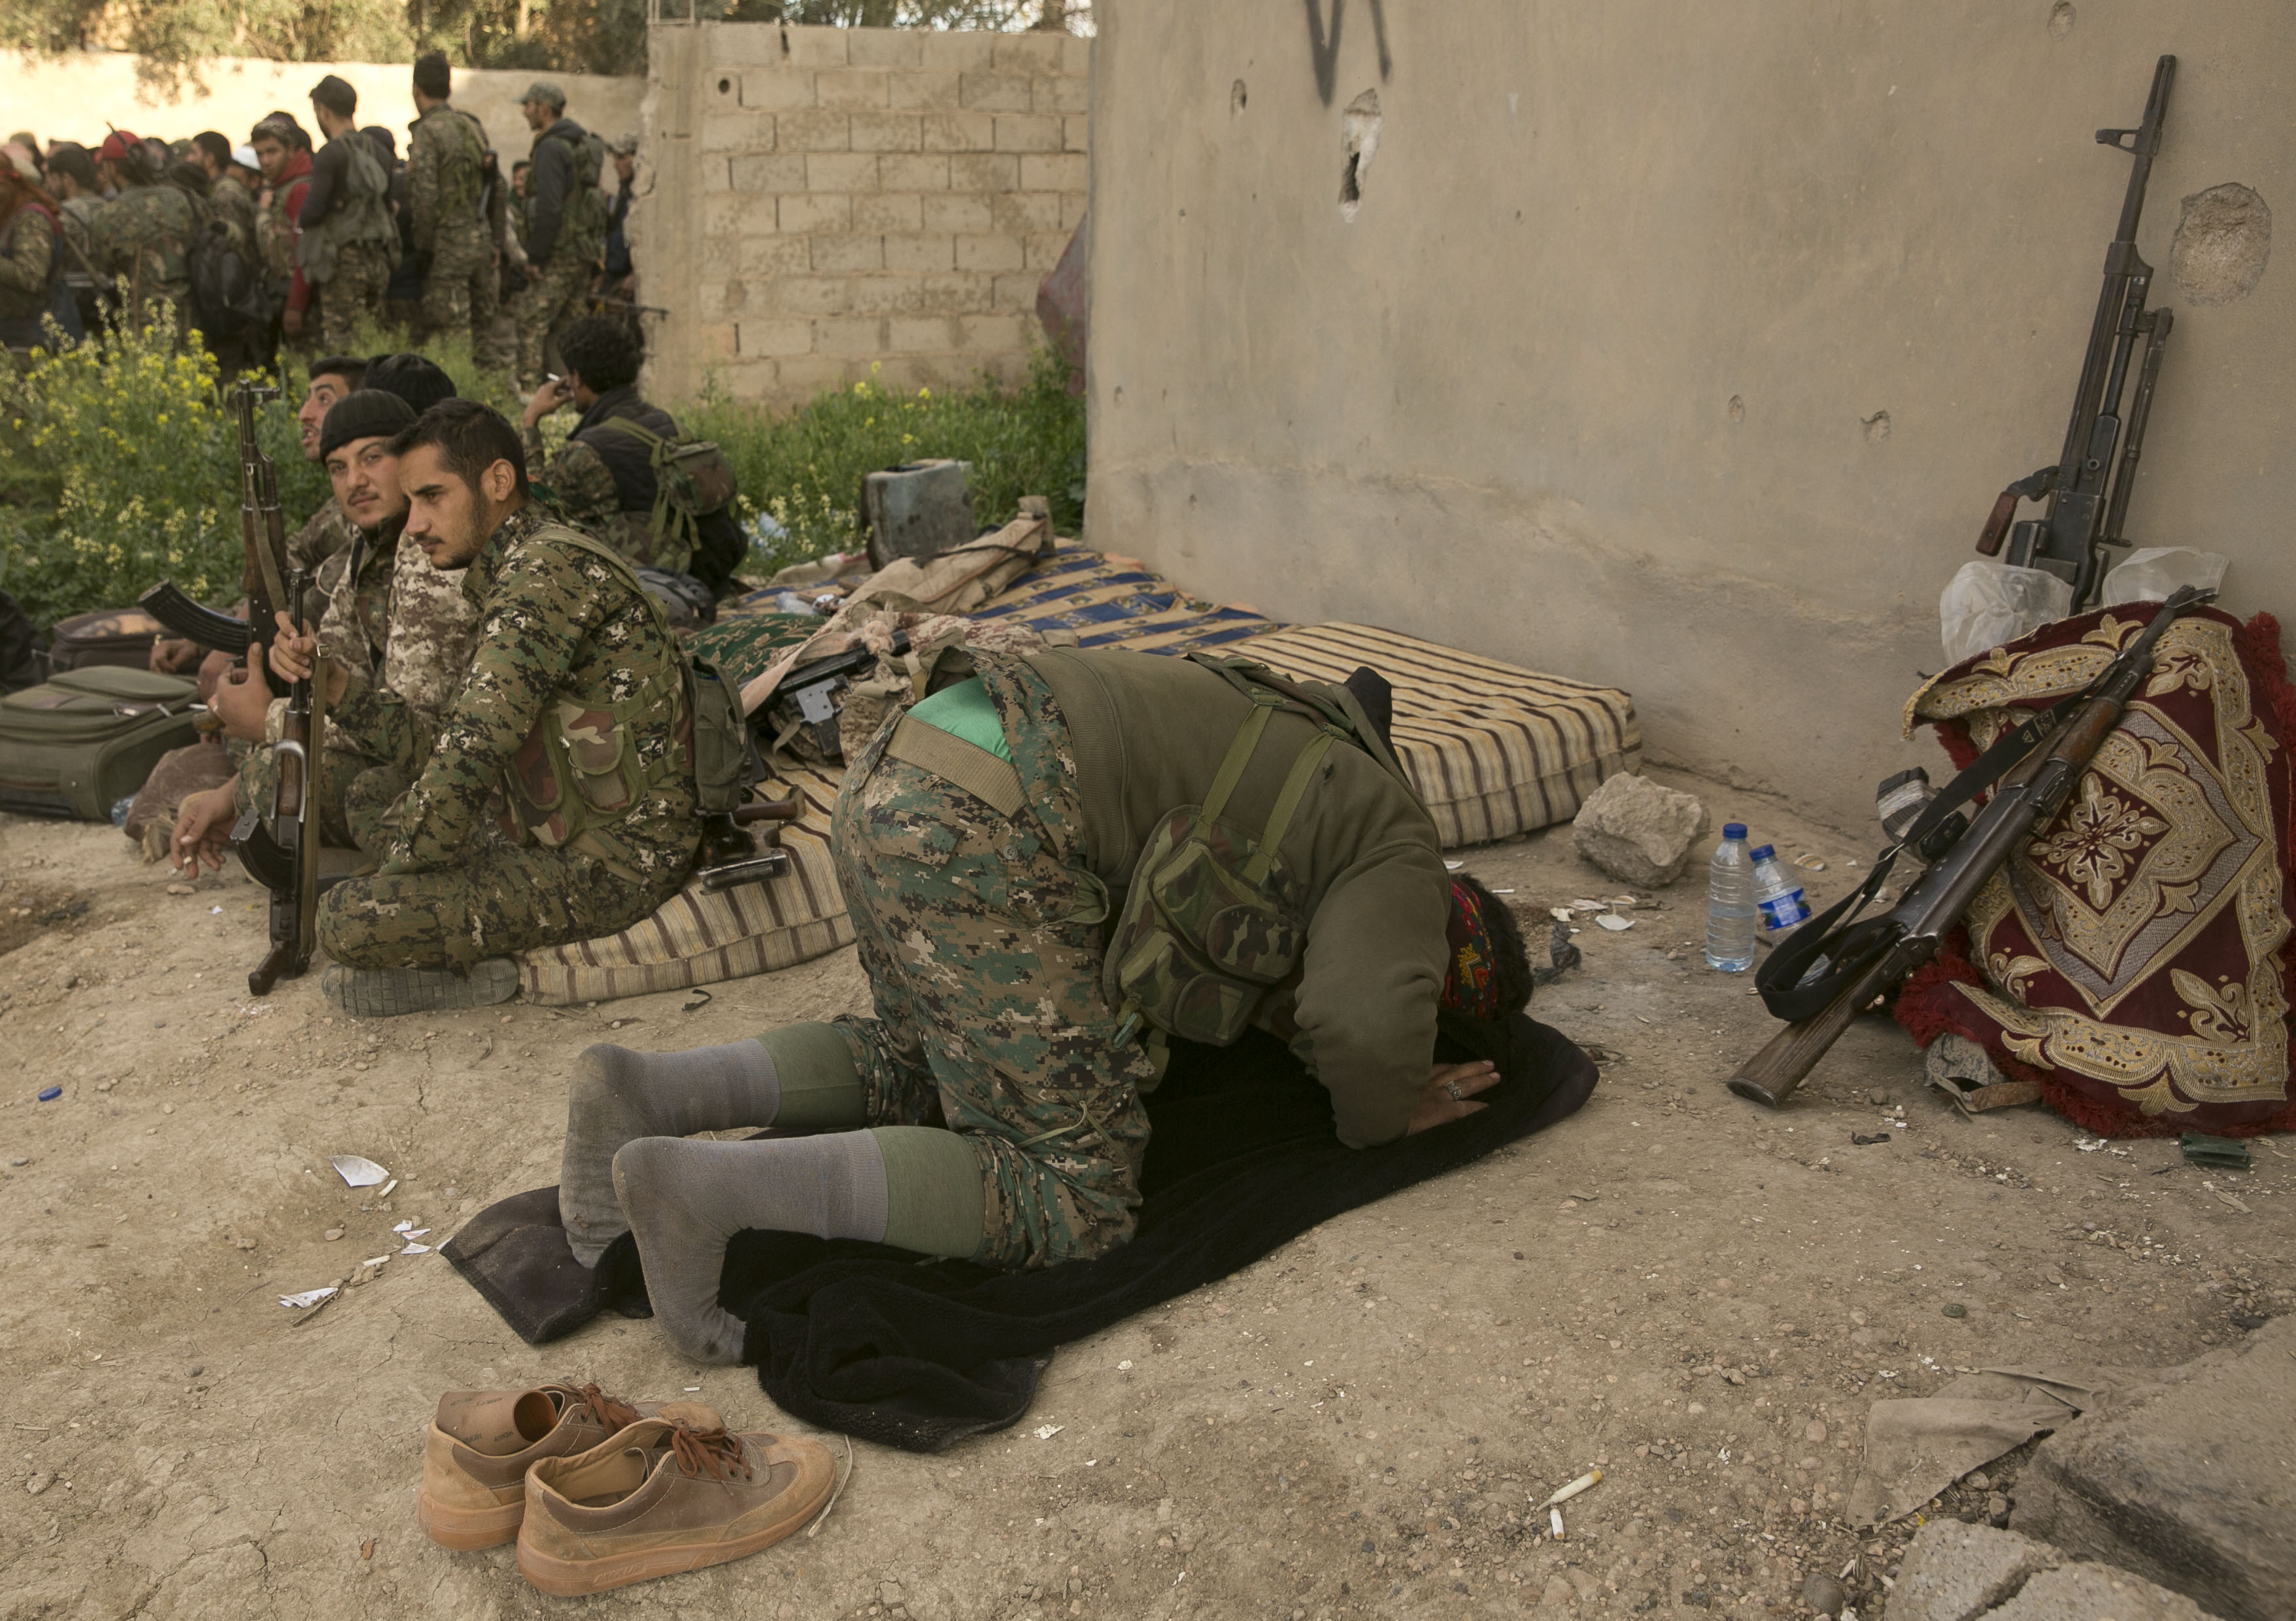 A U.S.-backed Syrian Democratic Forces fighter prays after returning from the front line in their fight against Islamic State militants in Baghuz, Syria, March 19, 2019.